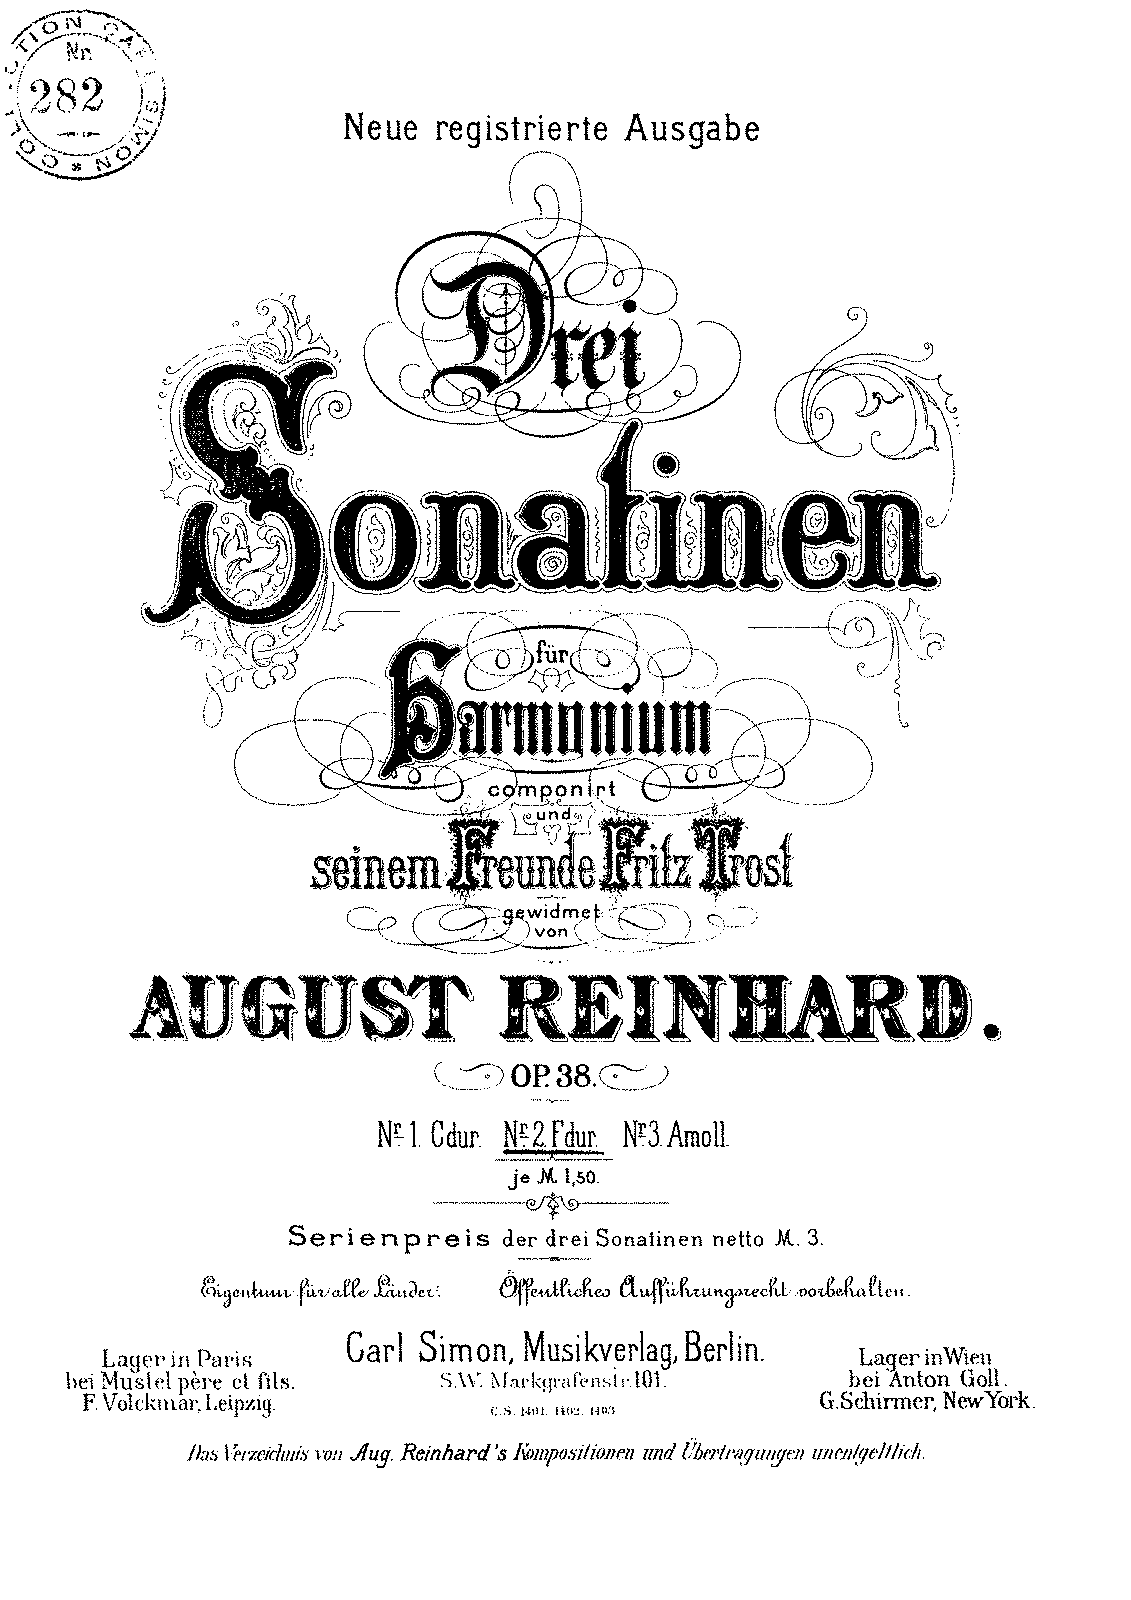 PMLP210407-Reinhard, August, 3 Sonatinas, Op.38, No.2 in F major.pdf